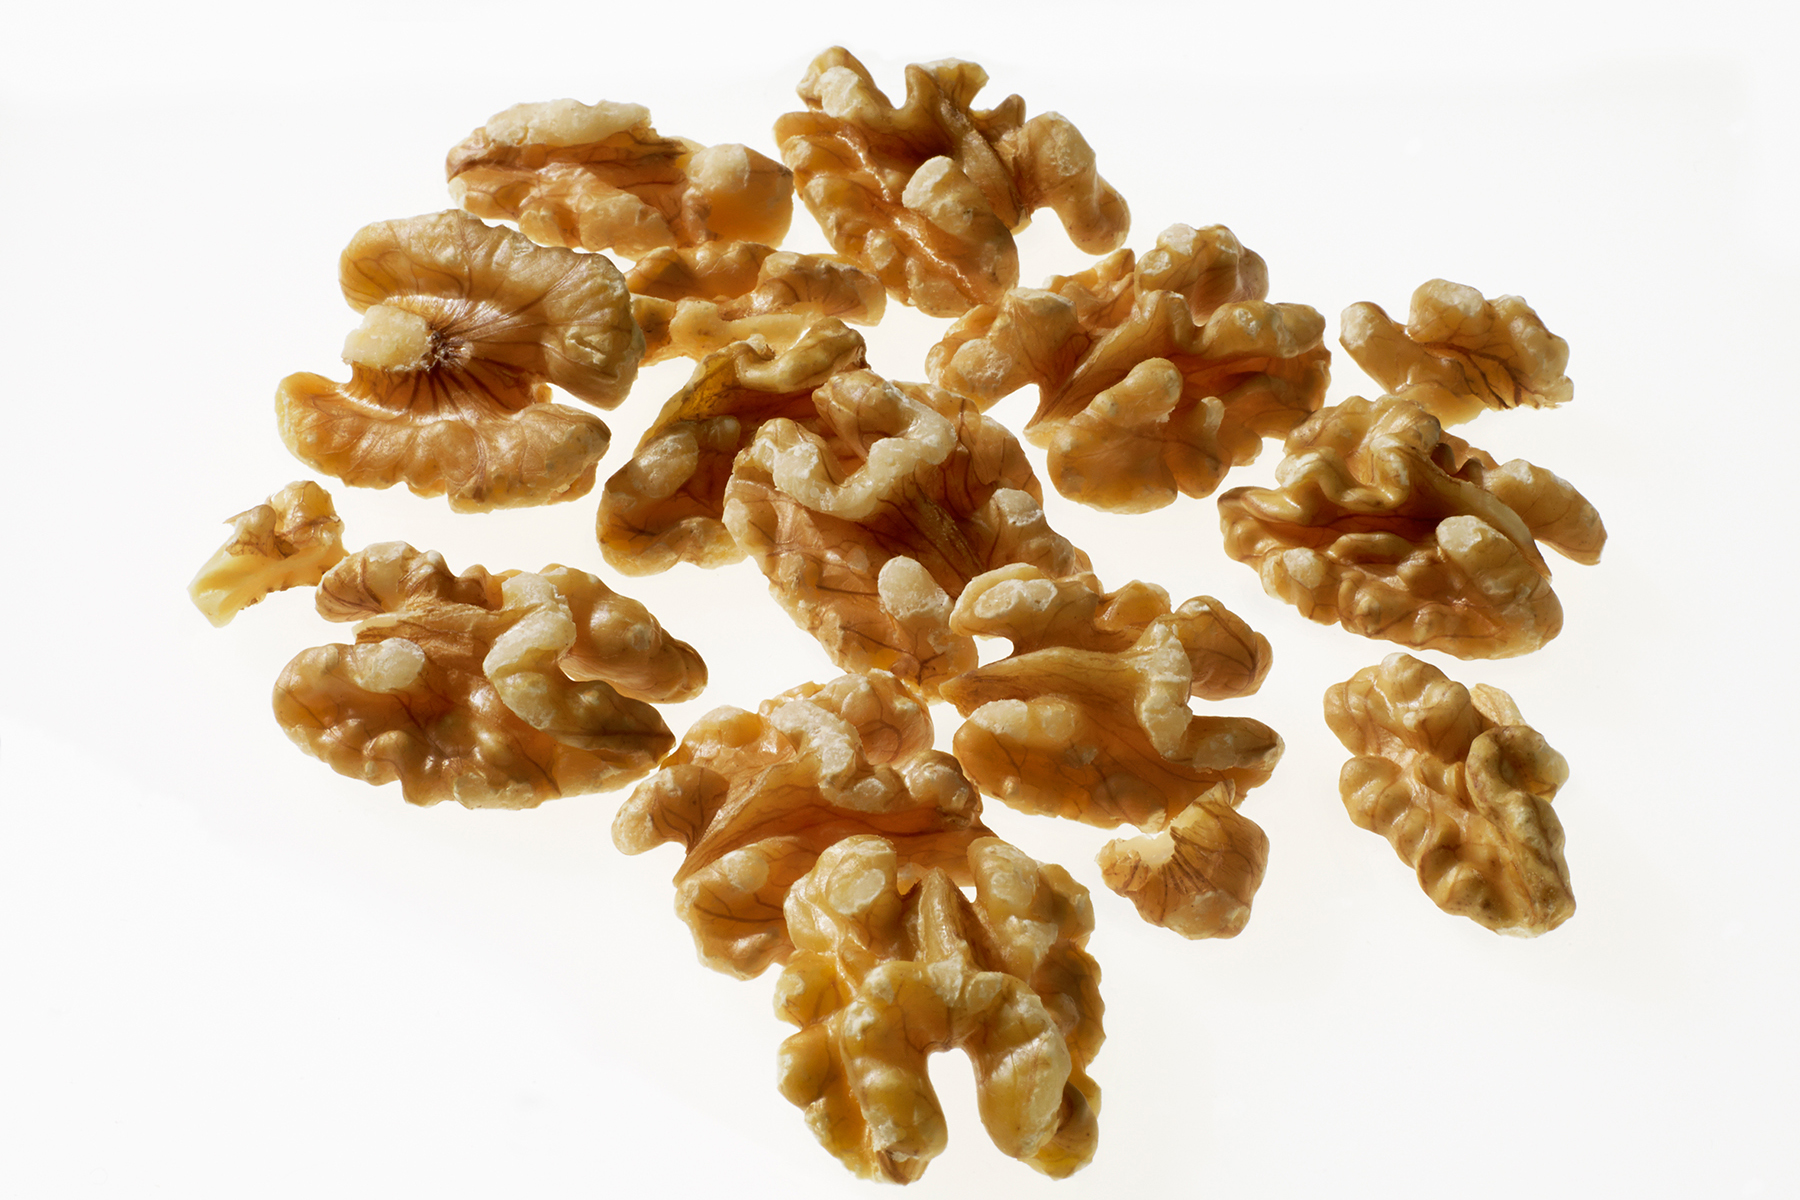 Walnuts May Help Prevent Colon Cancer